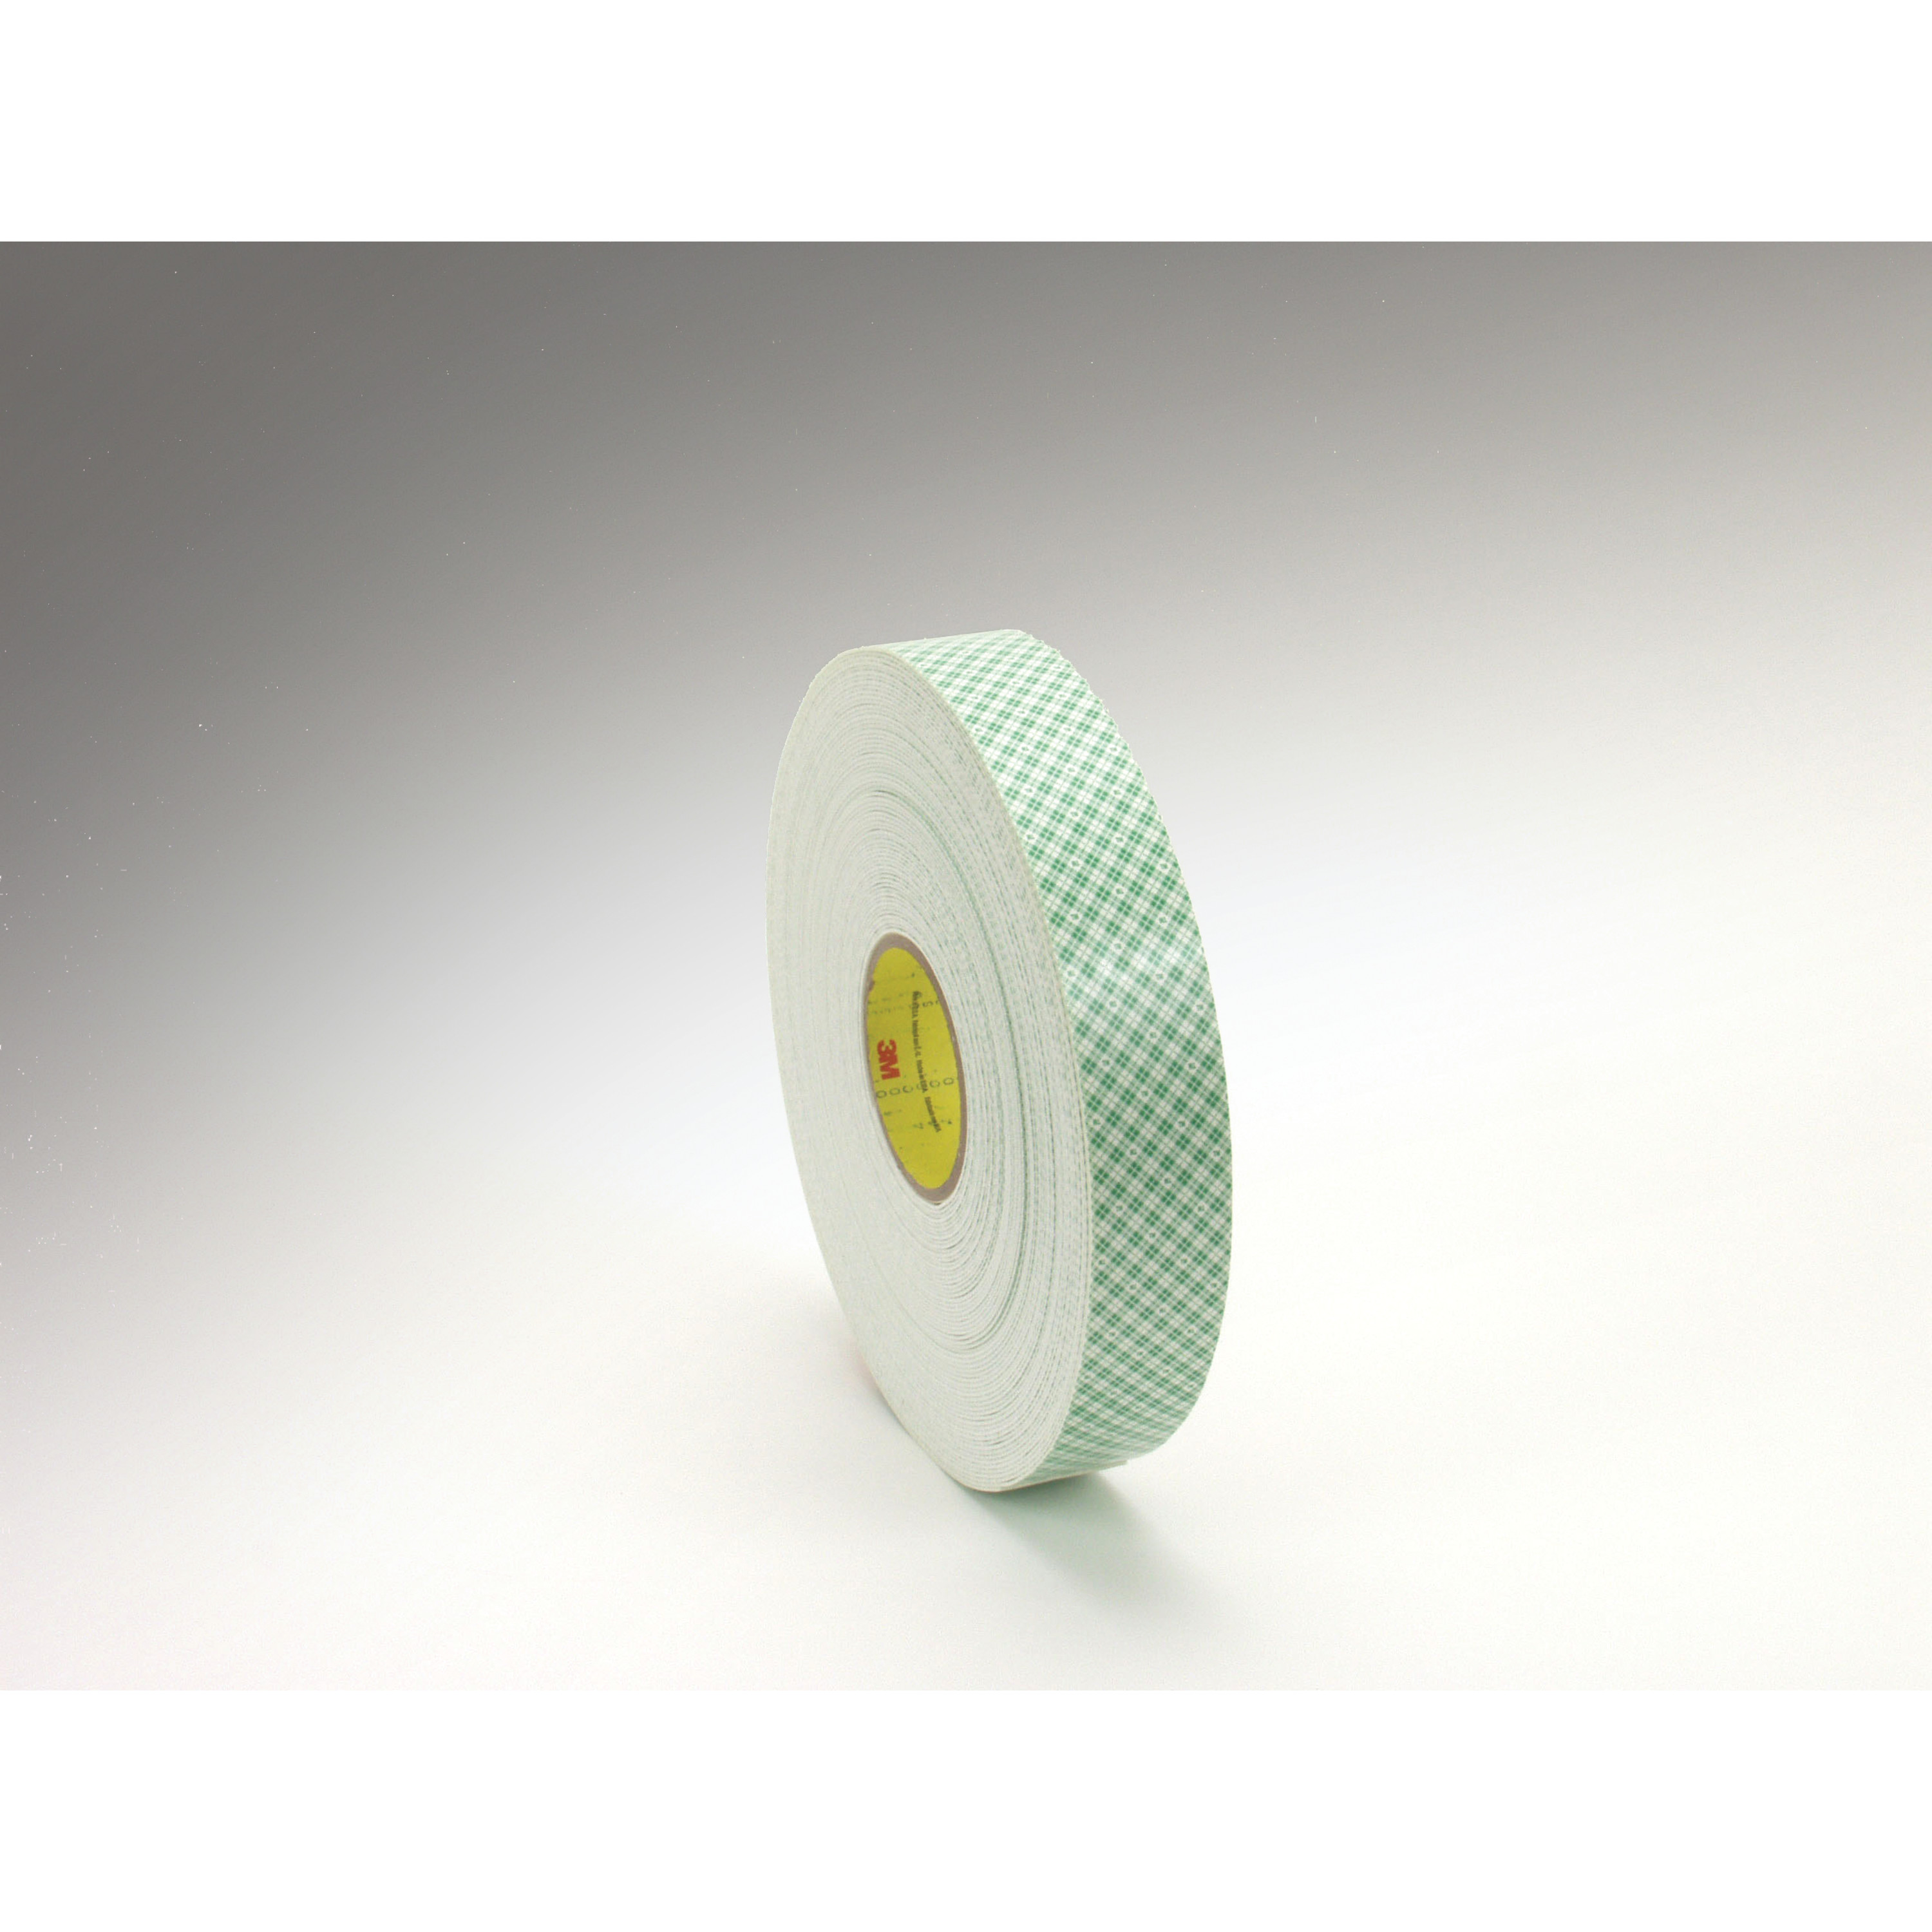 3M™ Double Coated Urethane Foam Tape 4016, Off White, 62 mil, Roll, Config